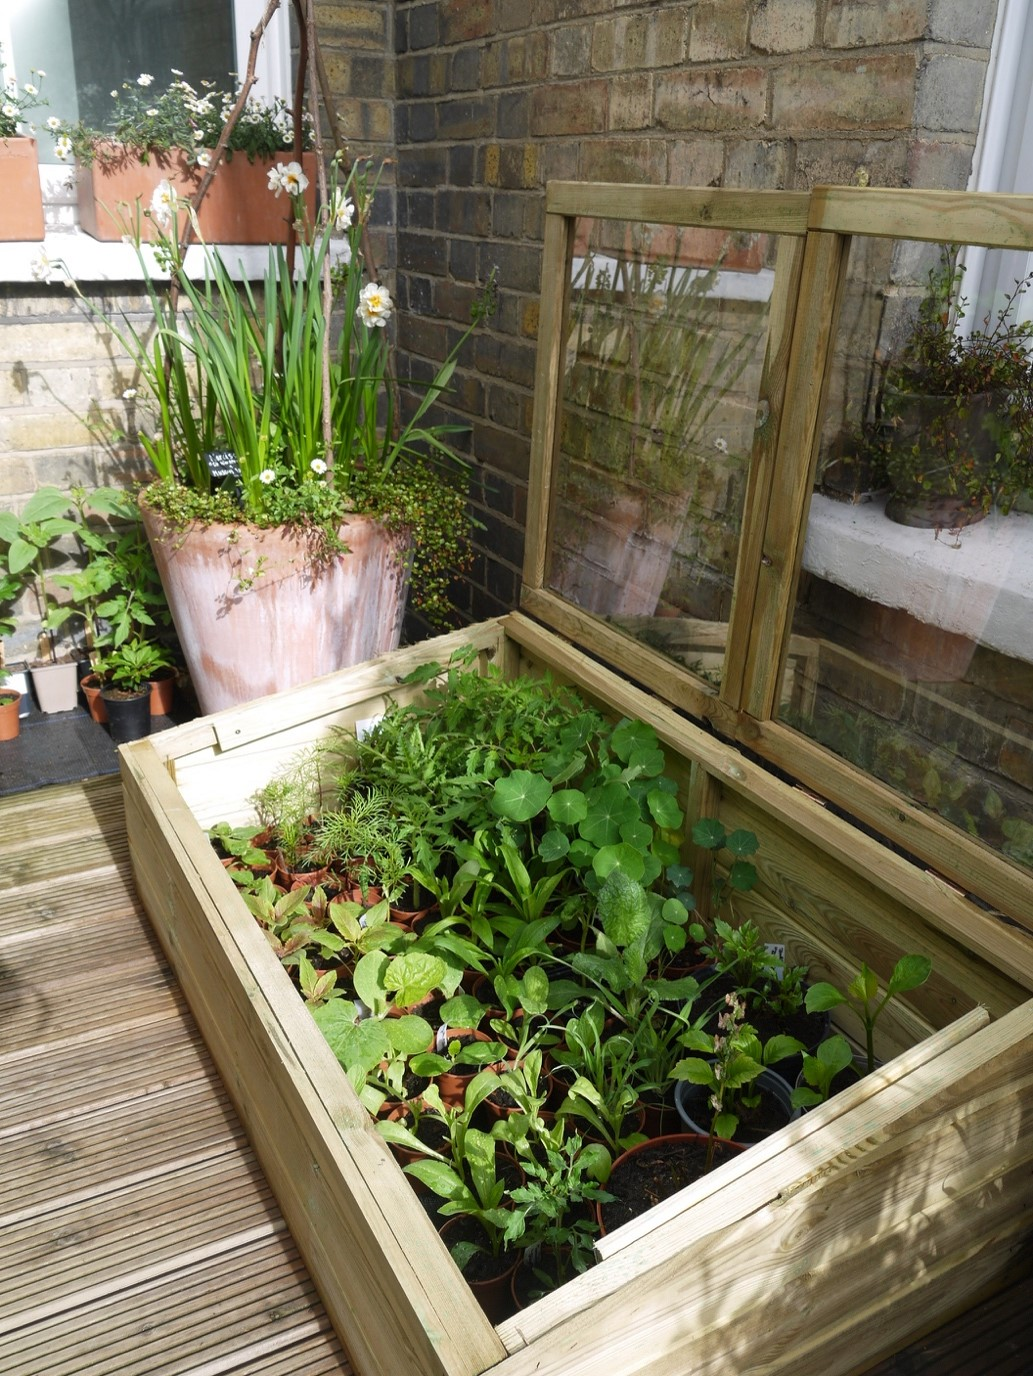 In this image, Alex's plants are growing in a wooden box, which sits in his garden by the house. The box has a lid, that has been lifted to take the photo. The lid is made out of the same wood and has two glass/plastic windows on the top. By the box are some potted plants.